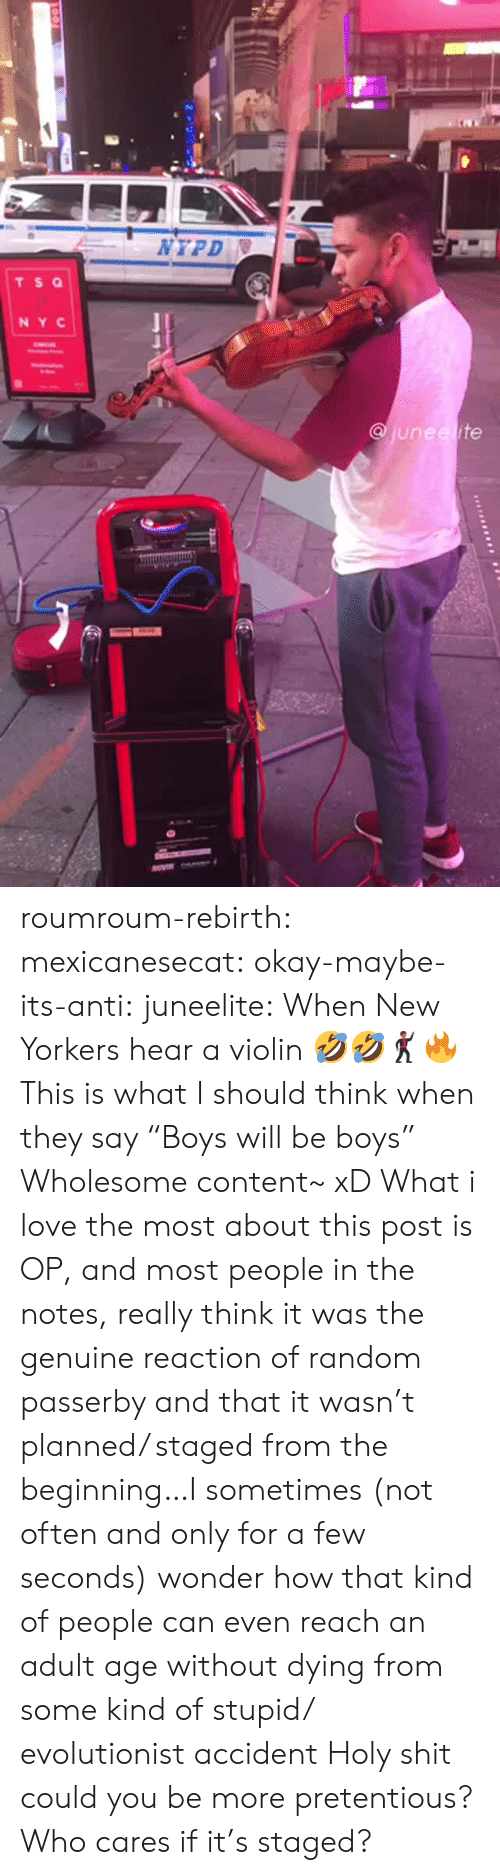 """violin: NYPD  TS Q  NY C  junee ite roumroum-rebirth:  mexicanesecat:  okay-maybe-its-anti:  juneelite: When New Yorkers hear a violin 🤣🤣🕺🏾🔥  This is what I should think when they say """"Boys will be boys""""  Wholesome content~ xD  What i love the most about this post is OP, and most people in the notes, really think it was the genuine reaction of random passerby and that it wasn't planned/ staged from the beginning…I sometimes (not often and only for a few seconds) wonder how that kind of people can even reach an adult age without dying from some kind of stupid/ evolutionist accident  Holy shit could you be more pretentious? Who cares if it's staged?"""